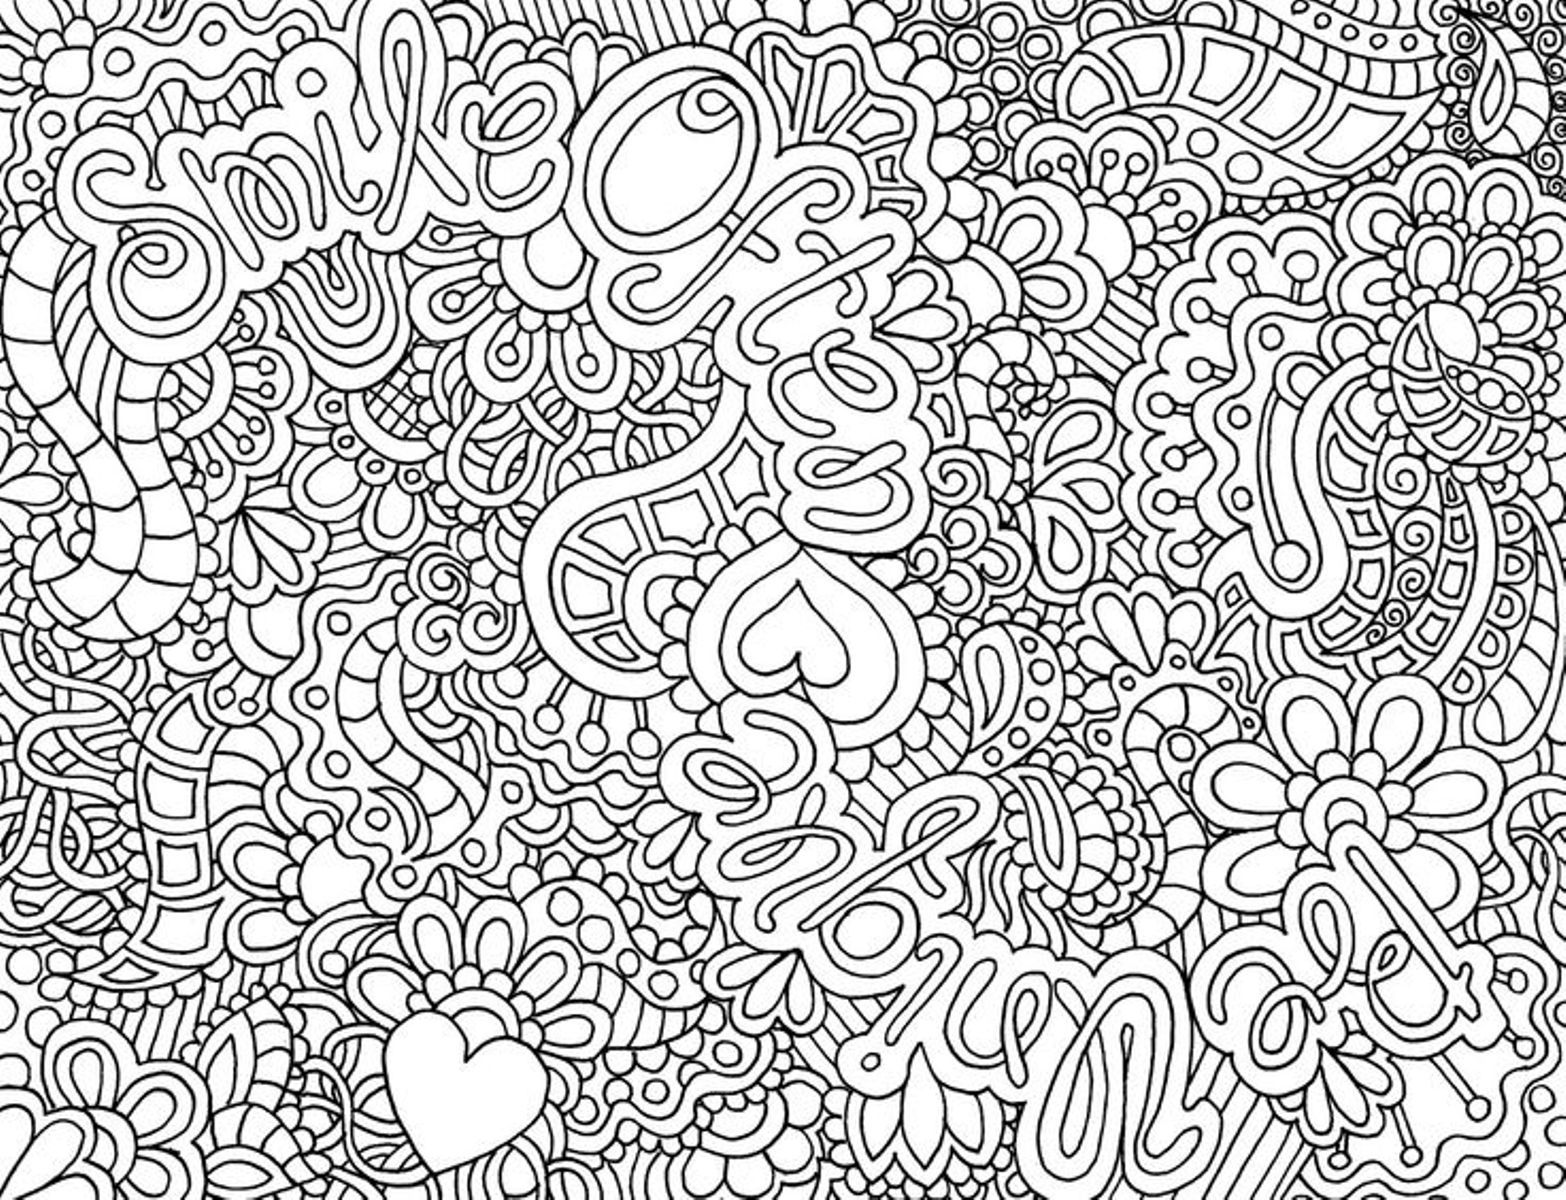 Coloring Pages For Teenagers Difficult Abstract Coloring Pages Coloring Pages For Teenagers Detailed Coloring Pages